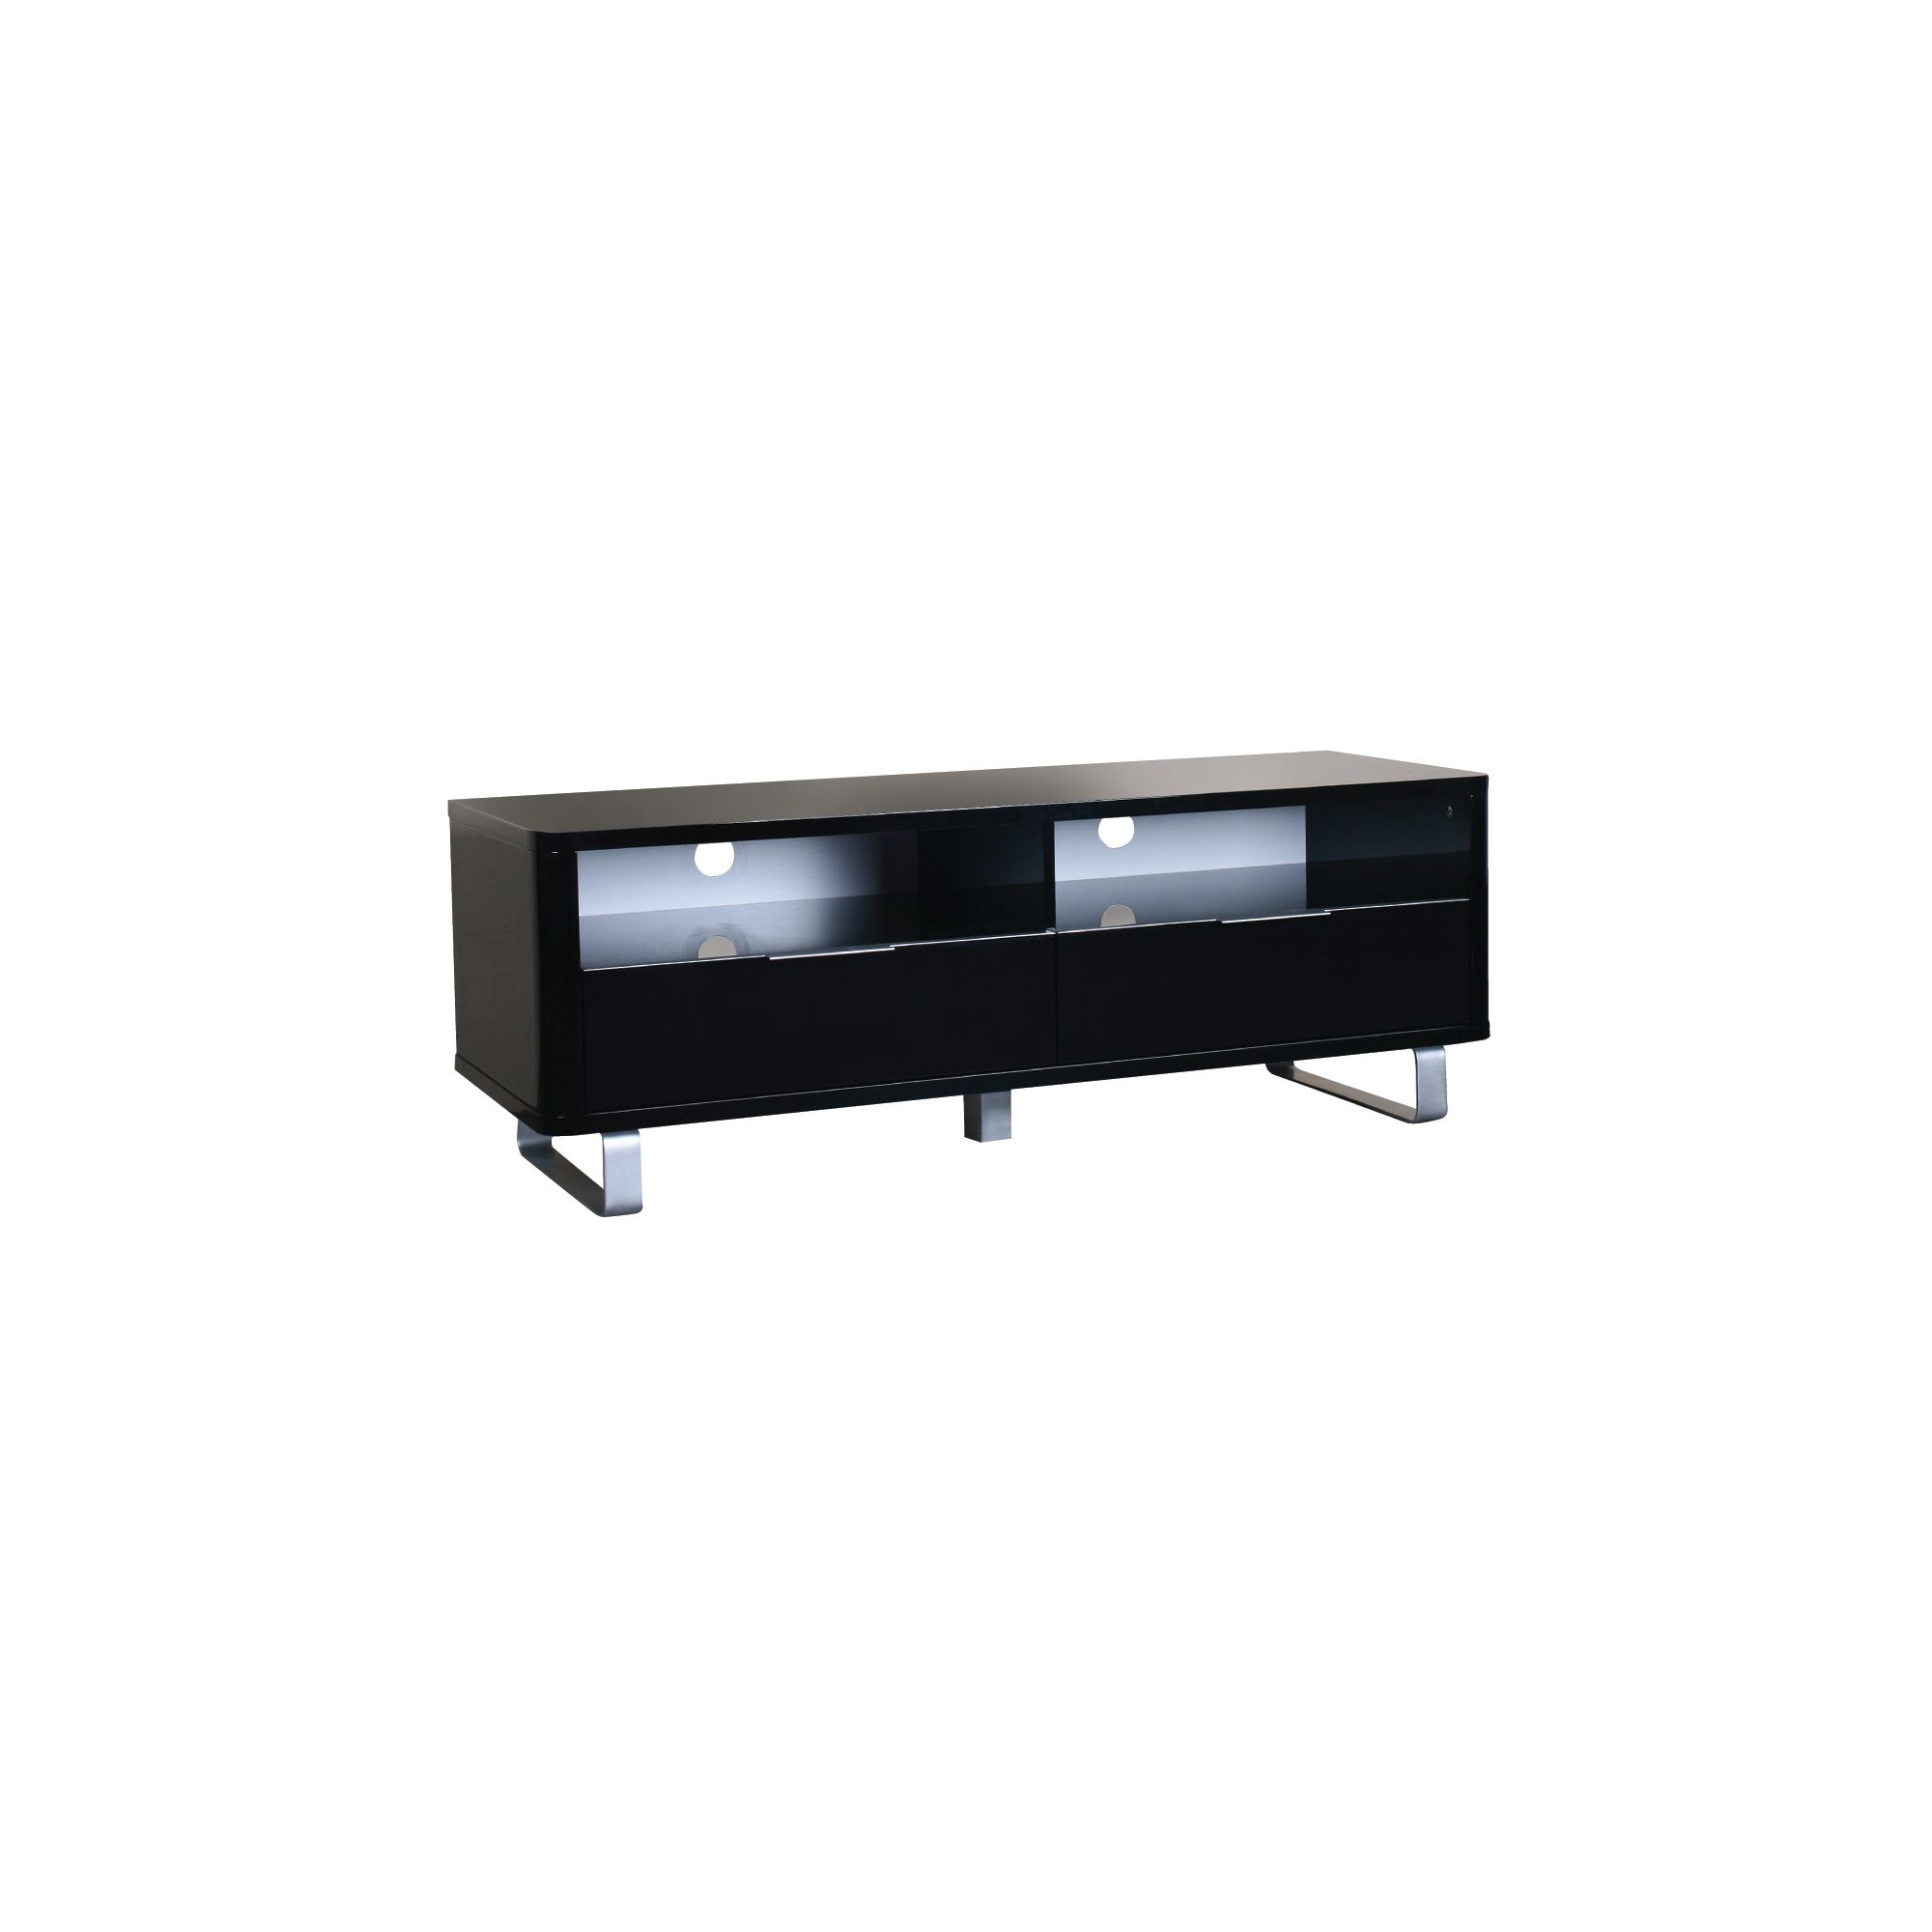 Home Zone Occasional Remedy TV Cabinet - Black at Tesco Direct